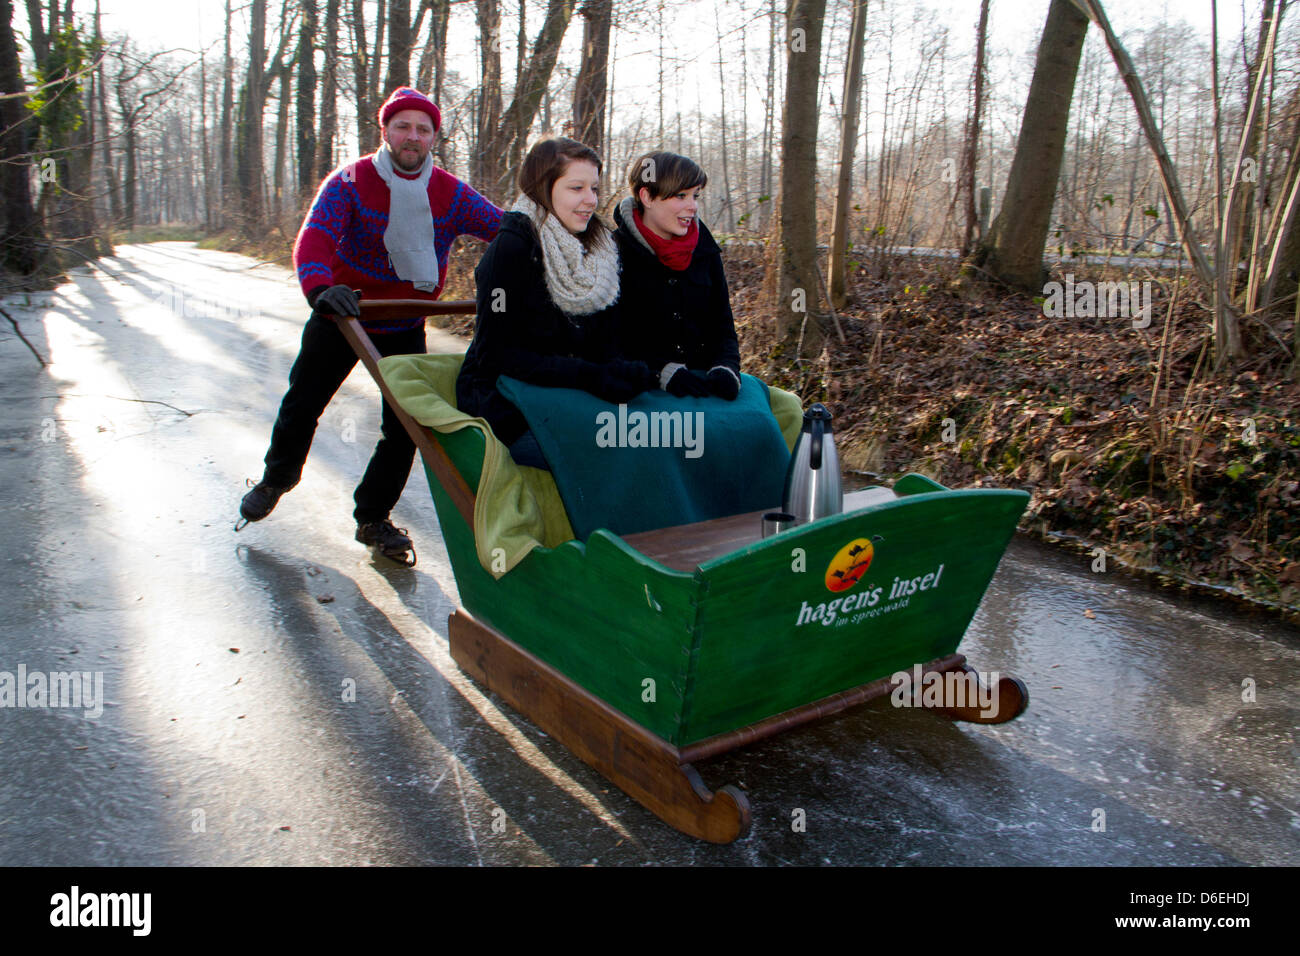 Mandy and Christin take a tour on a frozen stream with a sled pushed by Hagen Conrad in Burg, Germany, 31 January - Stock Image